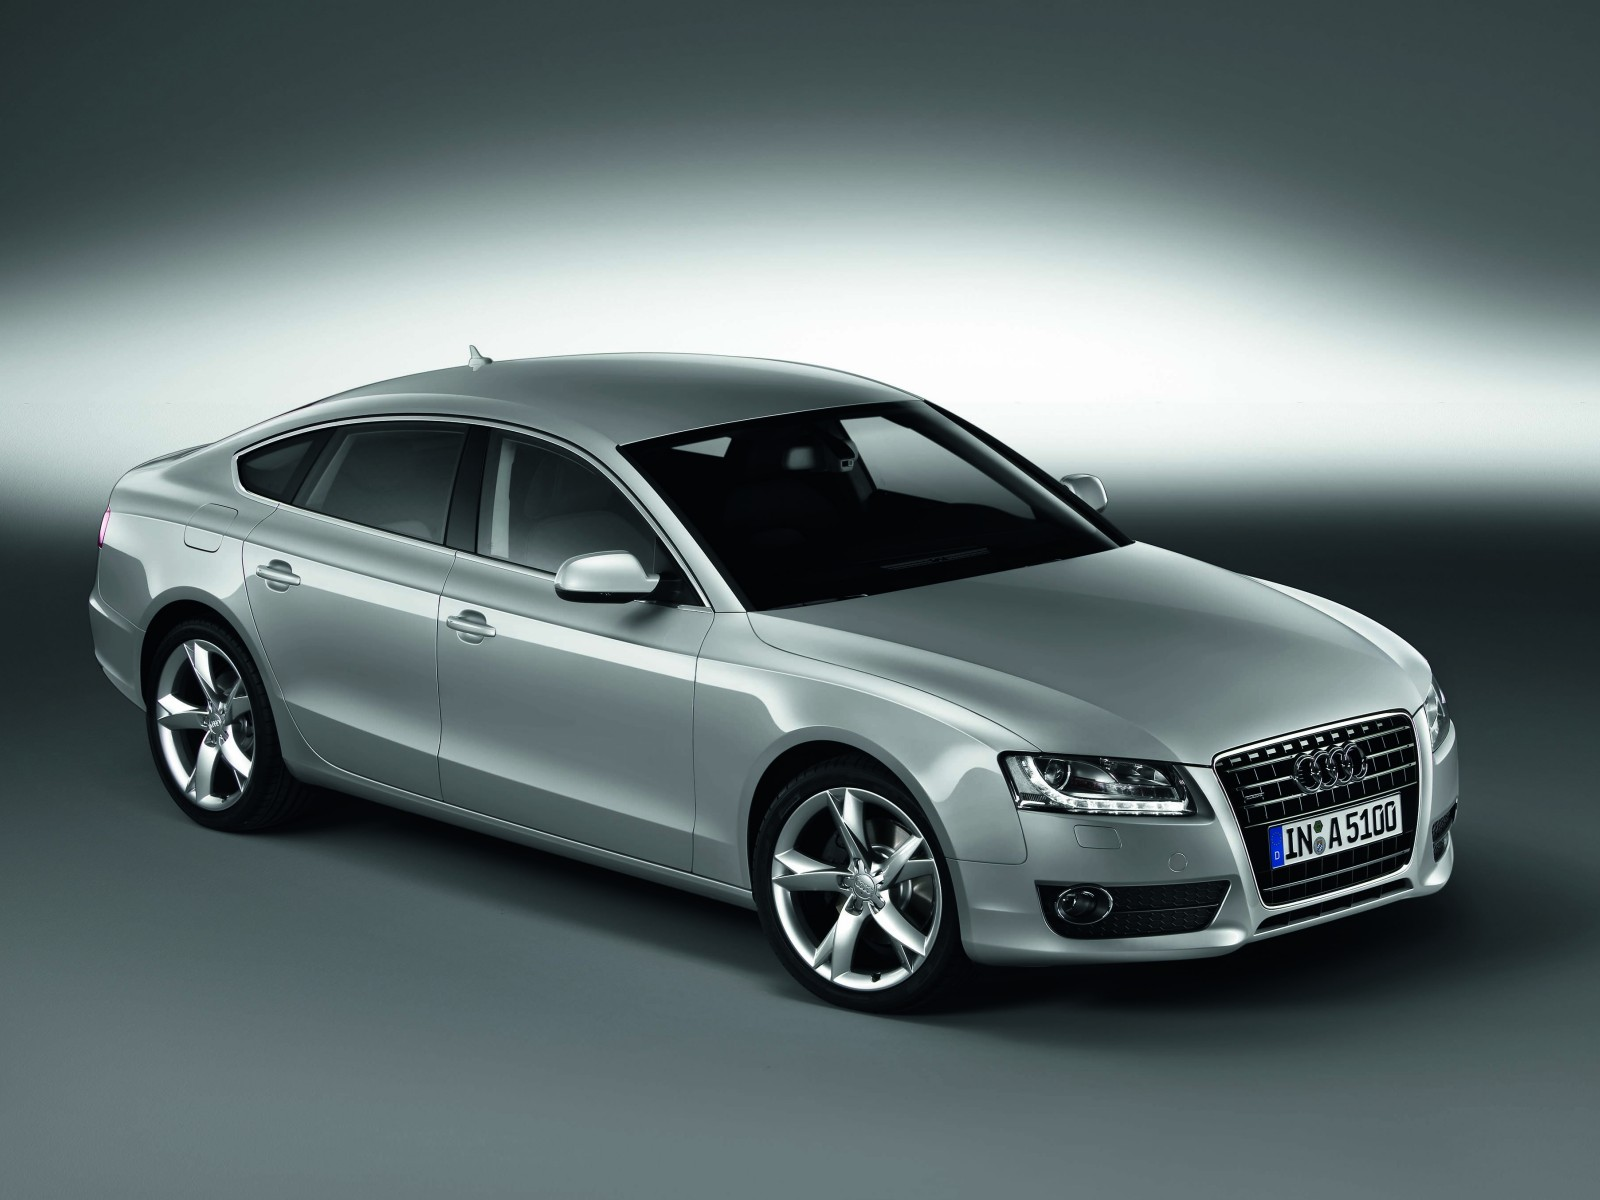 2010 audi a5 sportback 3 0 tdi motor desktop. Black Bedroom Furniture Sets. Home Design Ideas